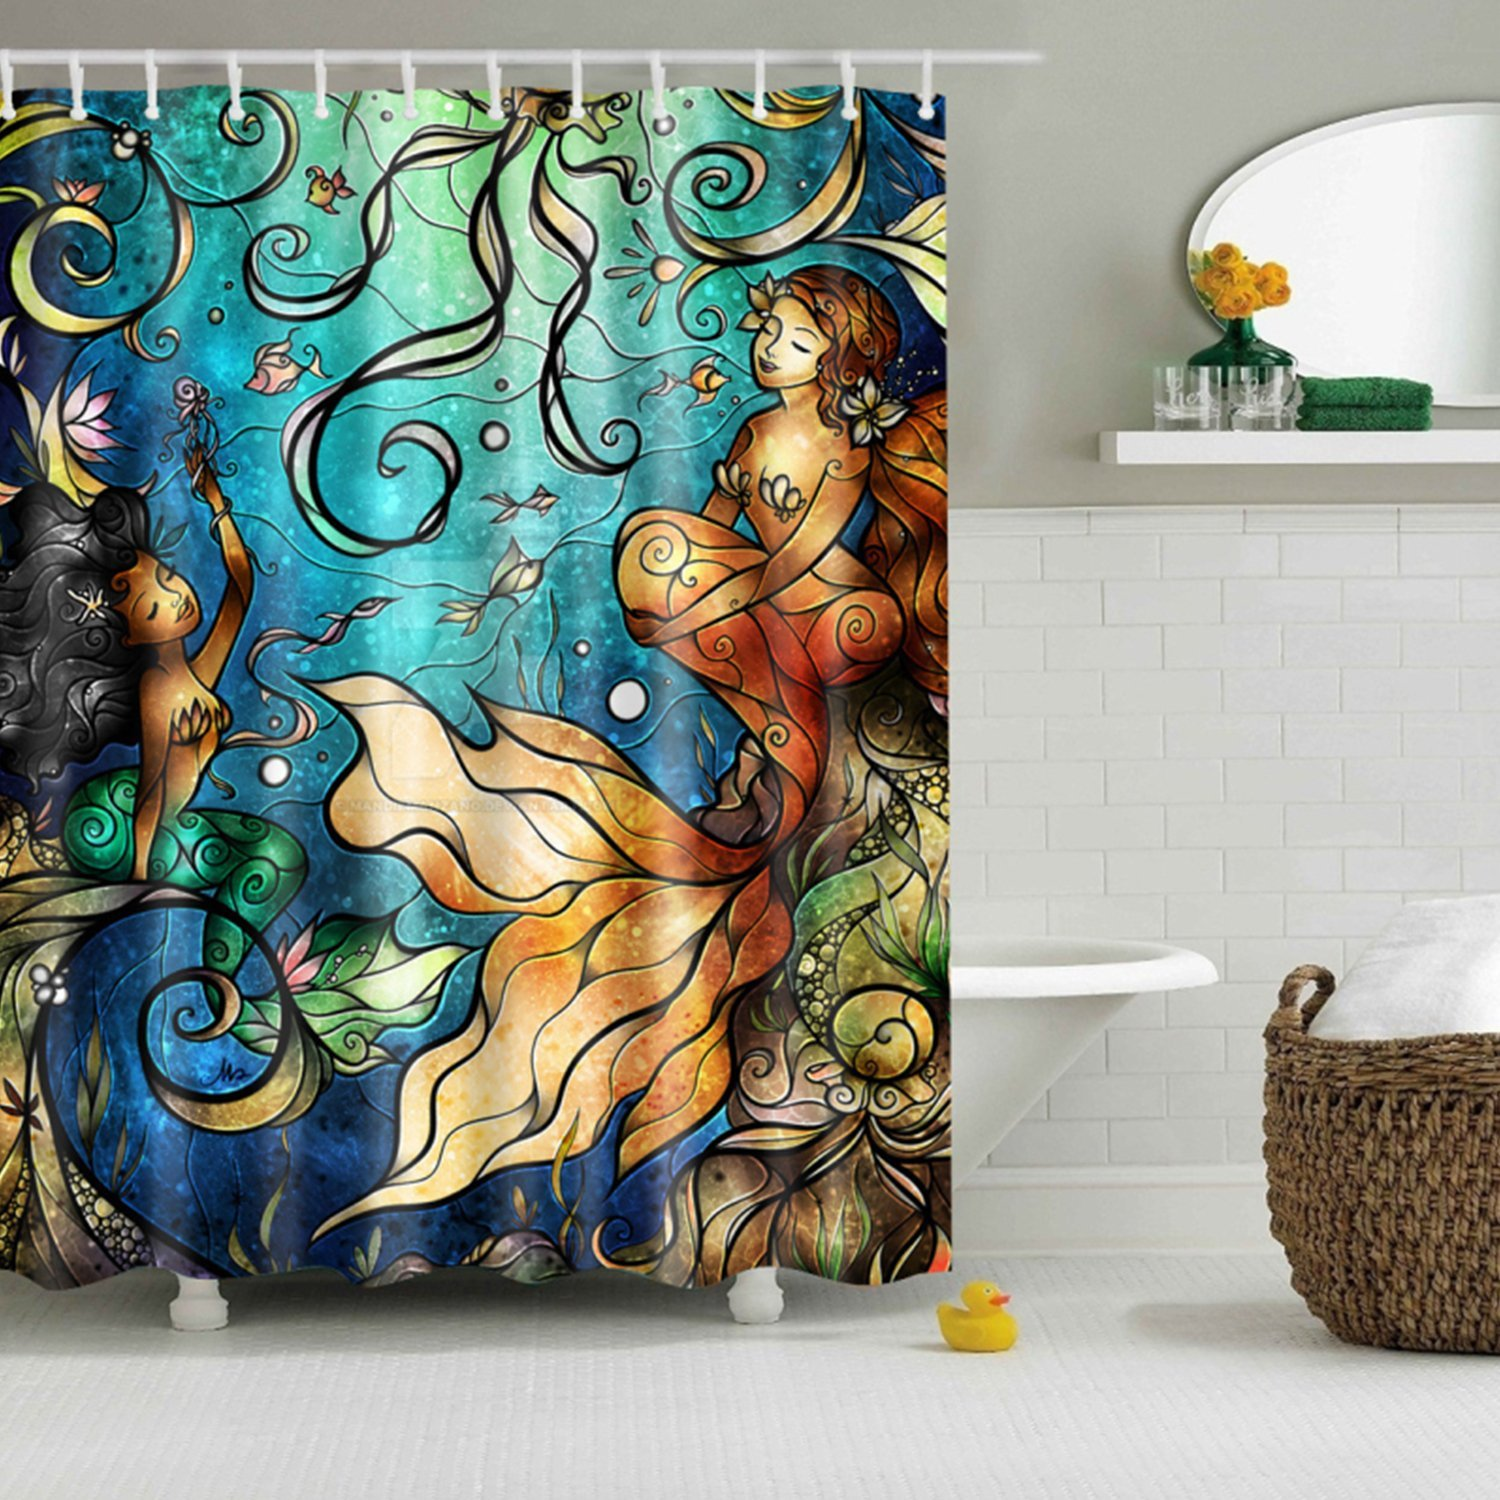 Mermaid shower curtains - Yimeis Mermaid Print Shower Curtain